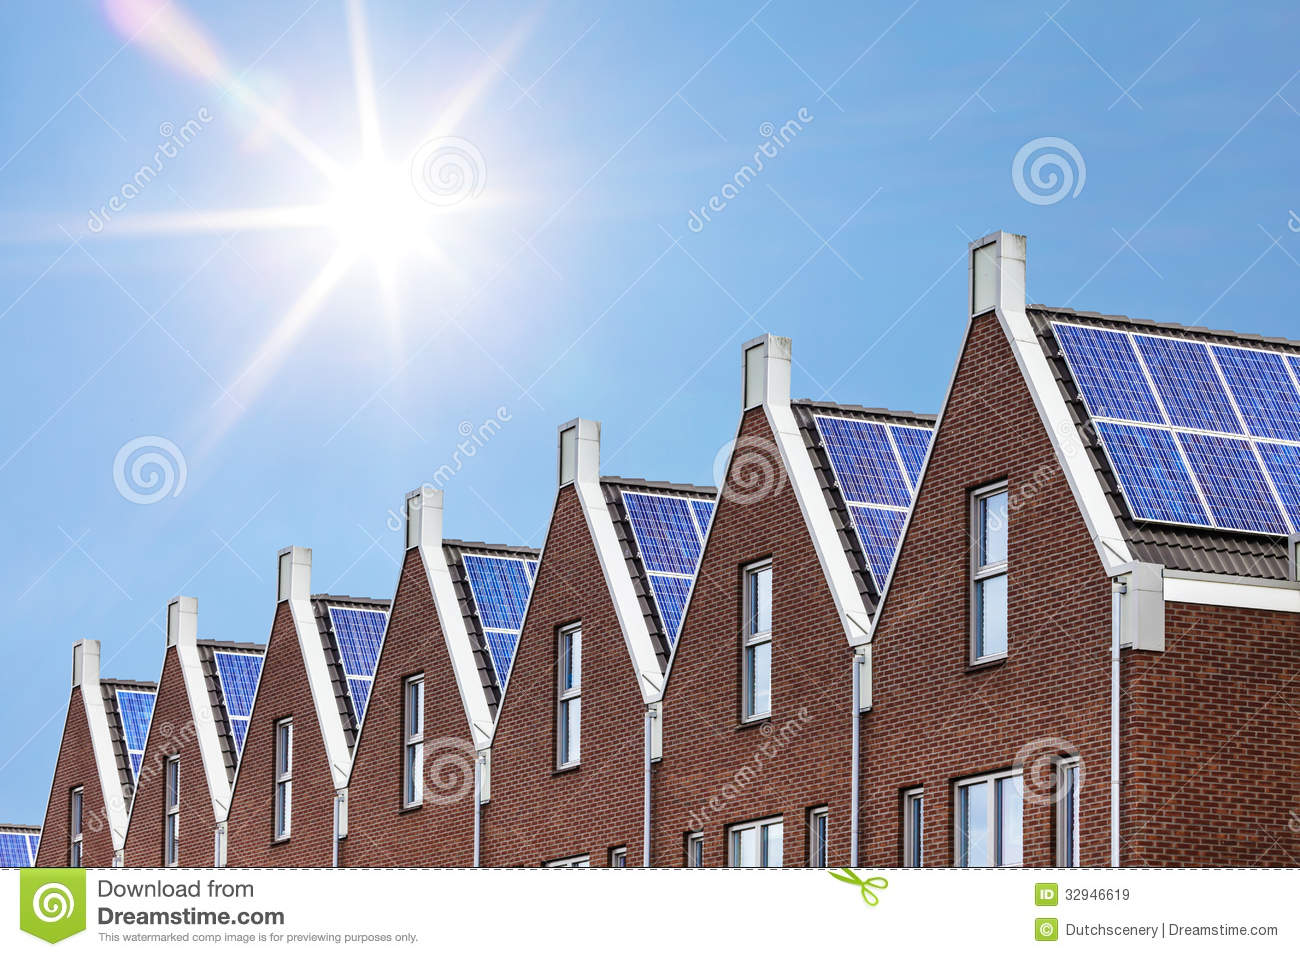 Newly Build Houses With Solar Panels Attached On The Roof Royalty Free ...